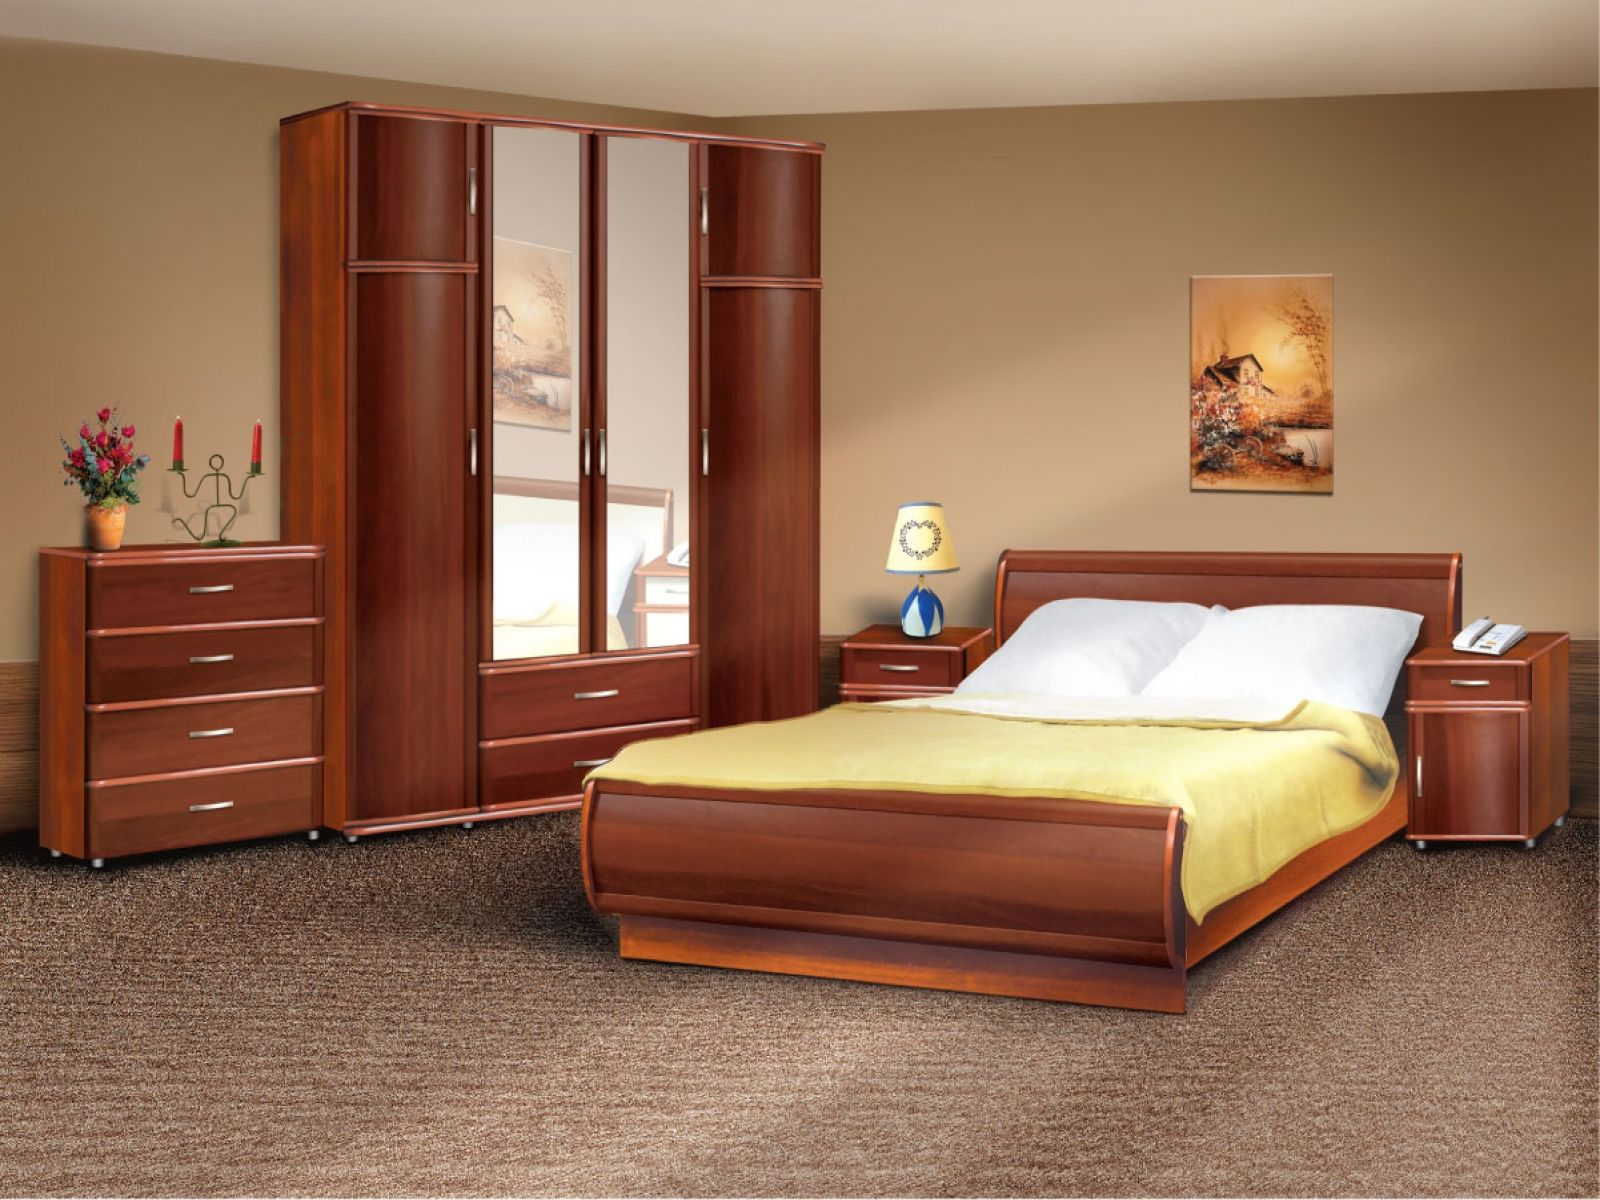 In vogue arc wooden headboard king size bed and double mirror door